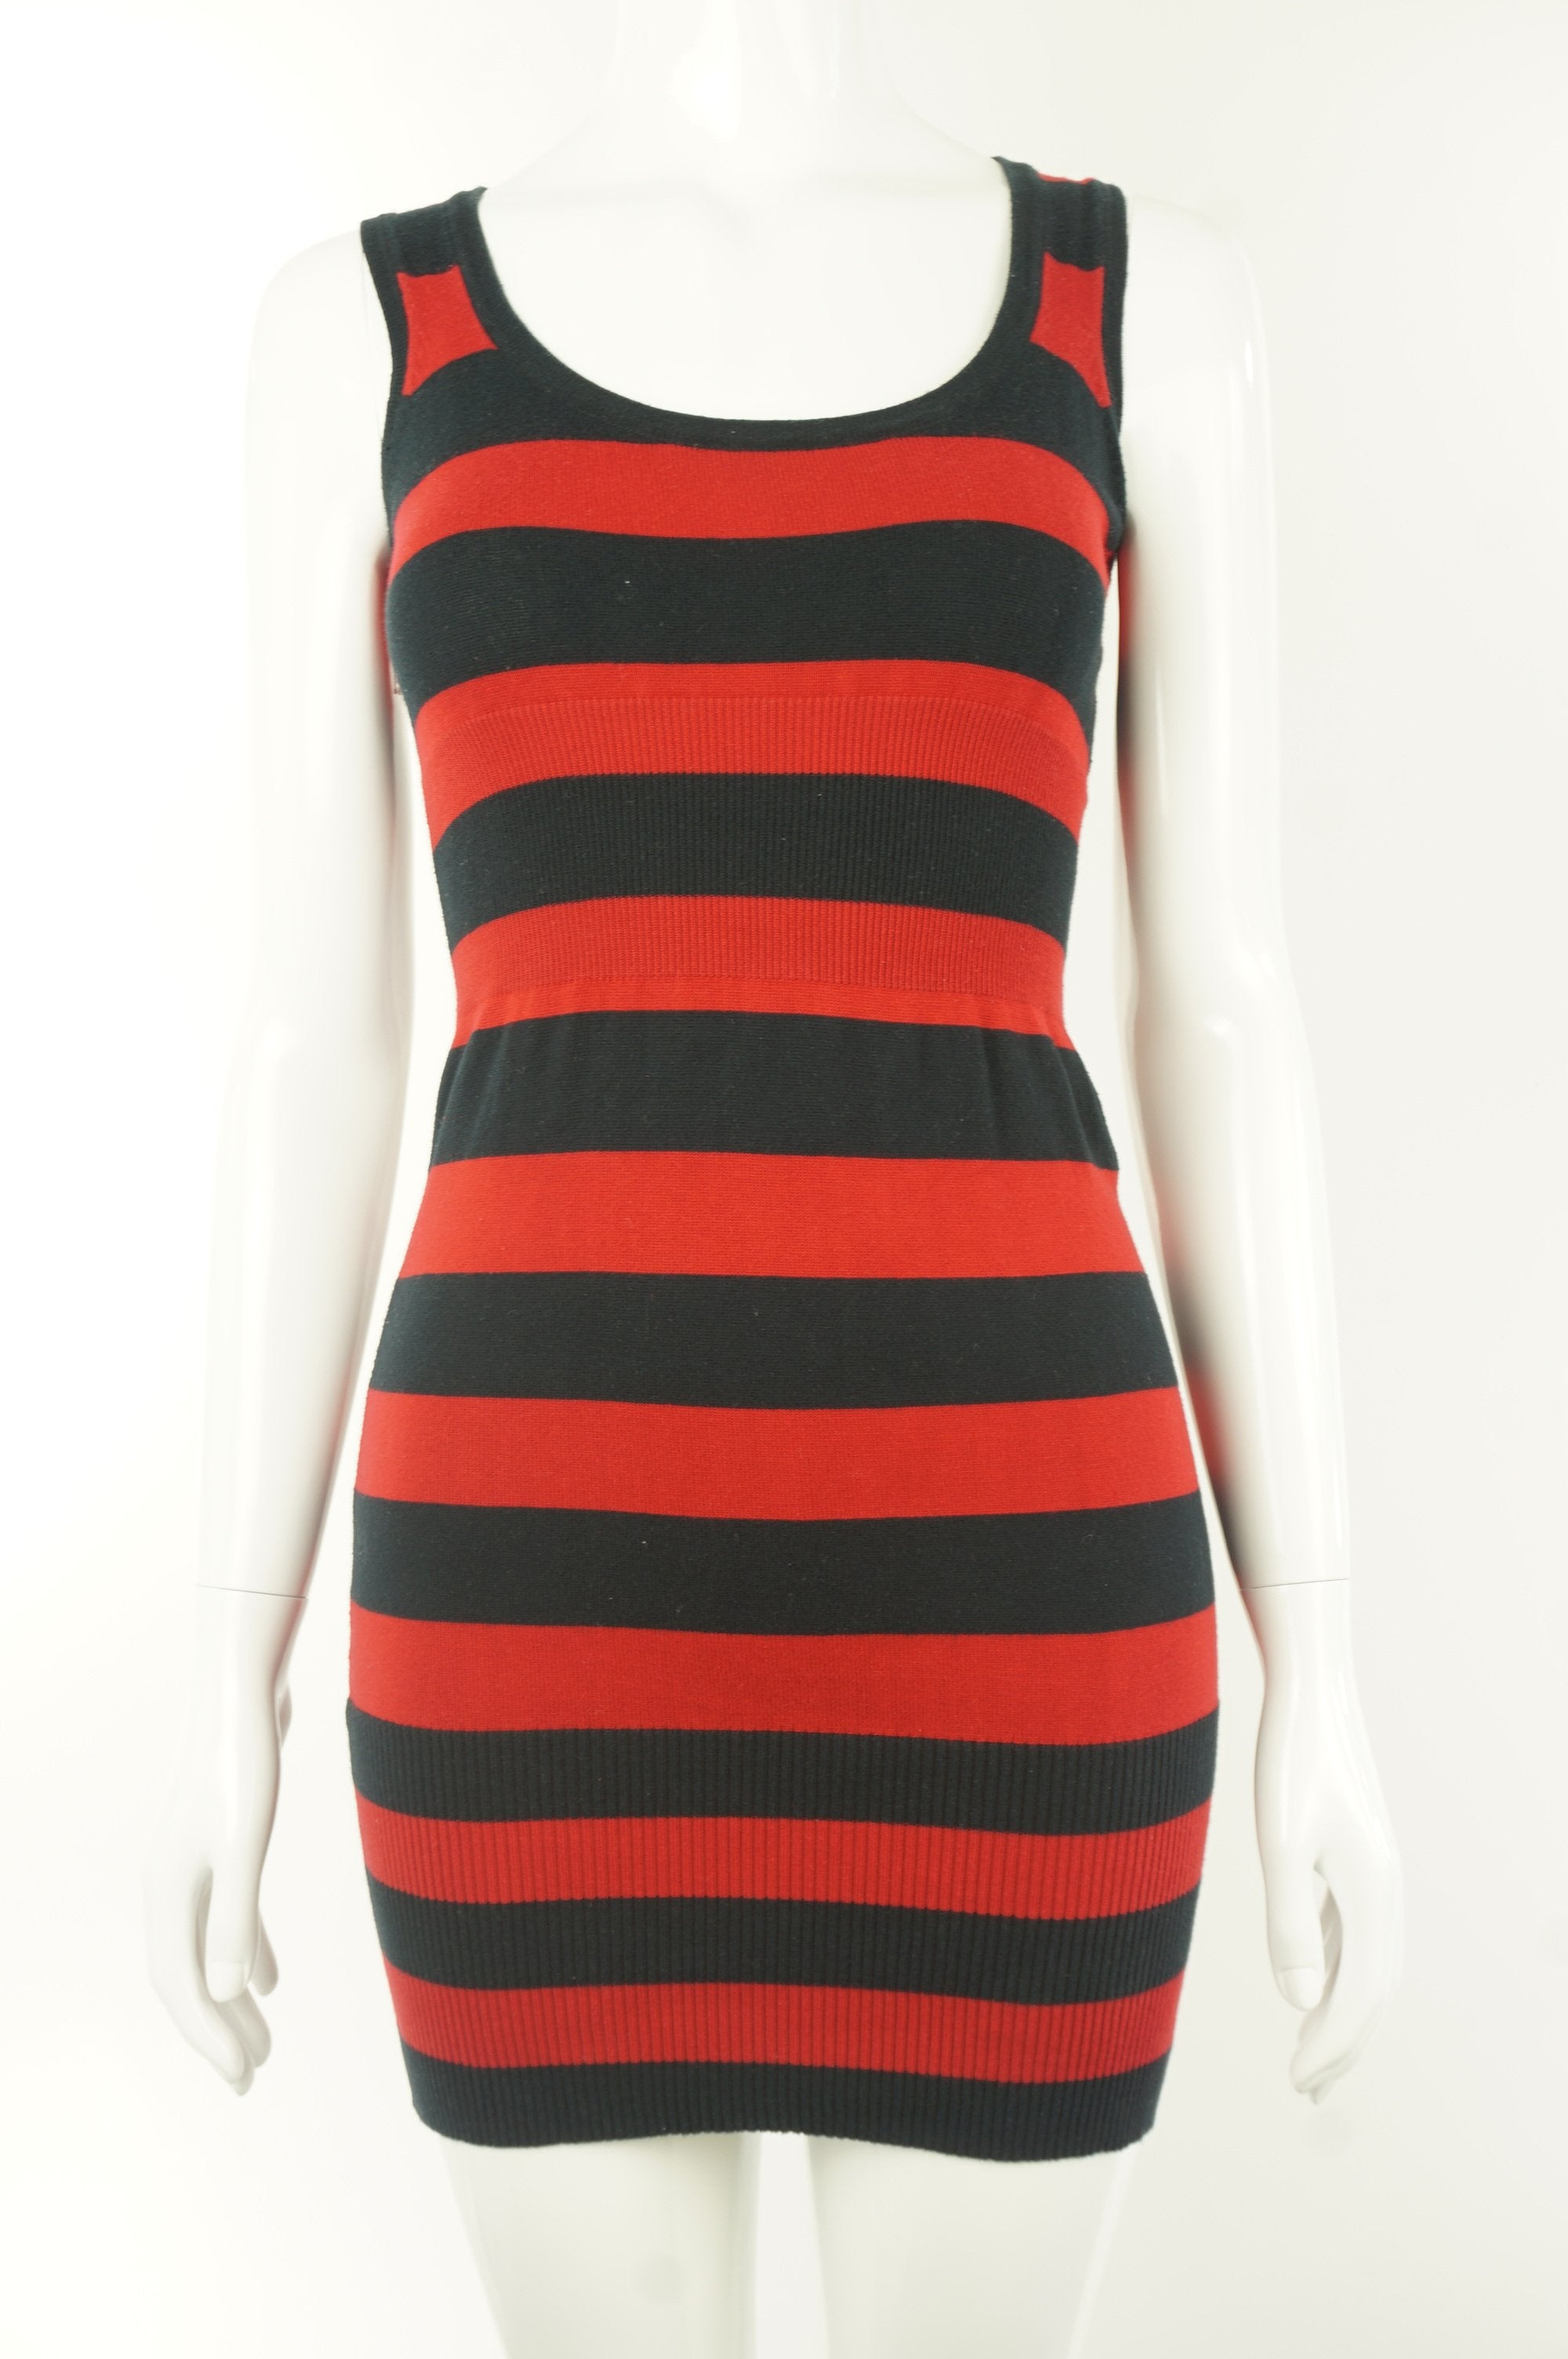 Zara Black and Red Striped Hobble Dress, You're as cute as a bumble bee! Yes, you heard us right. This super comfy and stretchy black and red striped hobble dress will make you stand out in that fun Saturday night party!, Black, Red, 4-way stretchy fabric, women's Dresses & Rompers, women's Black, Red Dresses & Rompers, Zara women's Dresses & Rompers, Black and Red bumble bee bodycon dress, stretchy tube bodycon dress, basic comfy striped bodycon dress, Black and Red bumble bee sheath stretch dress